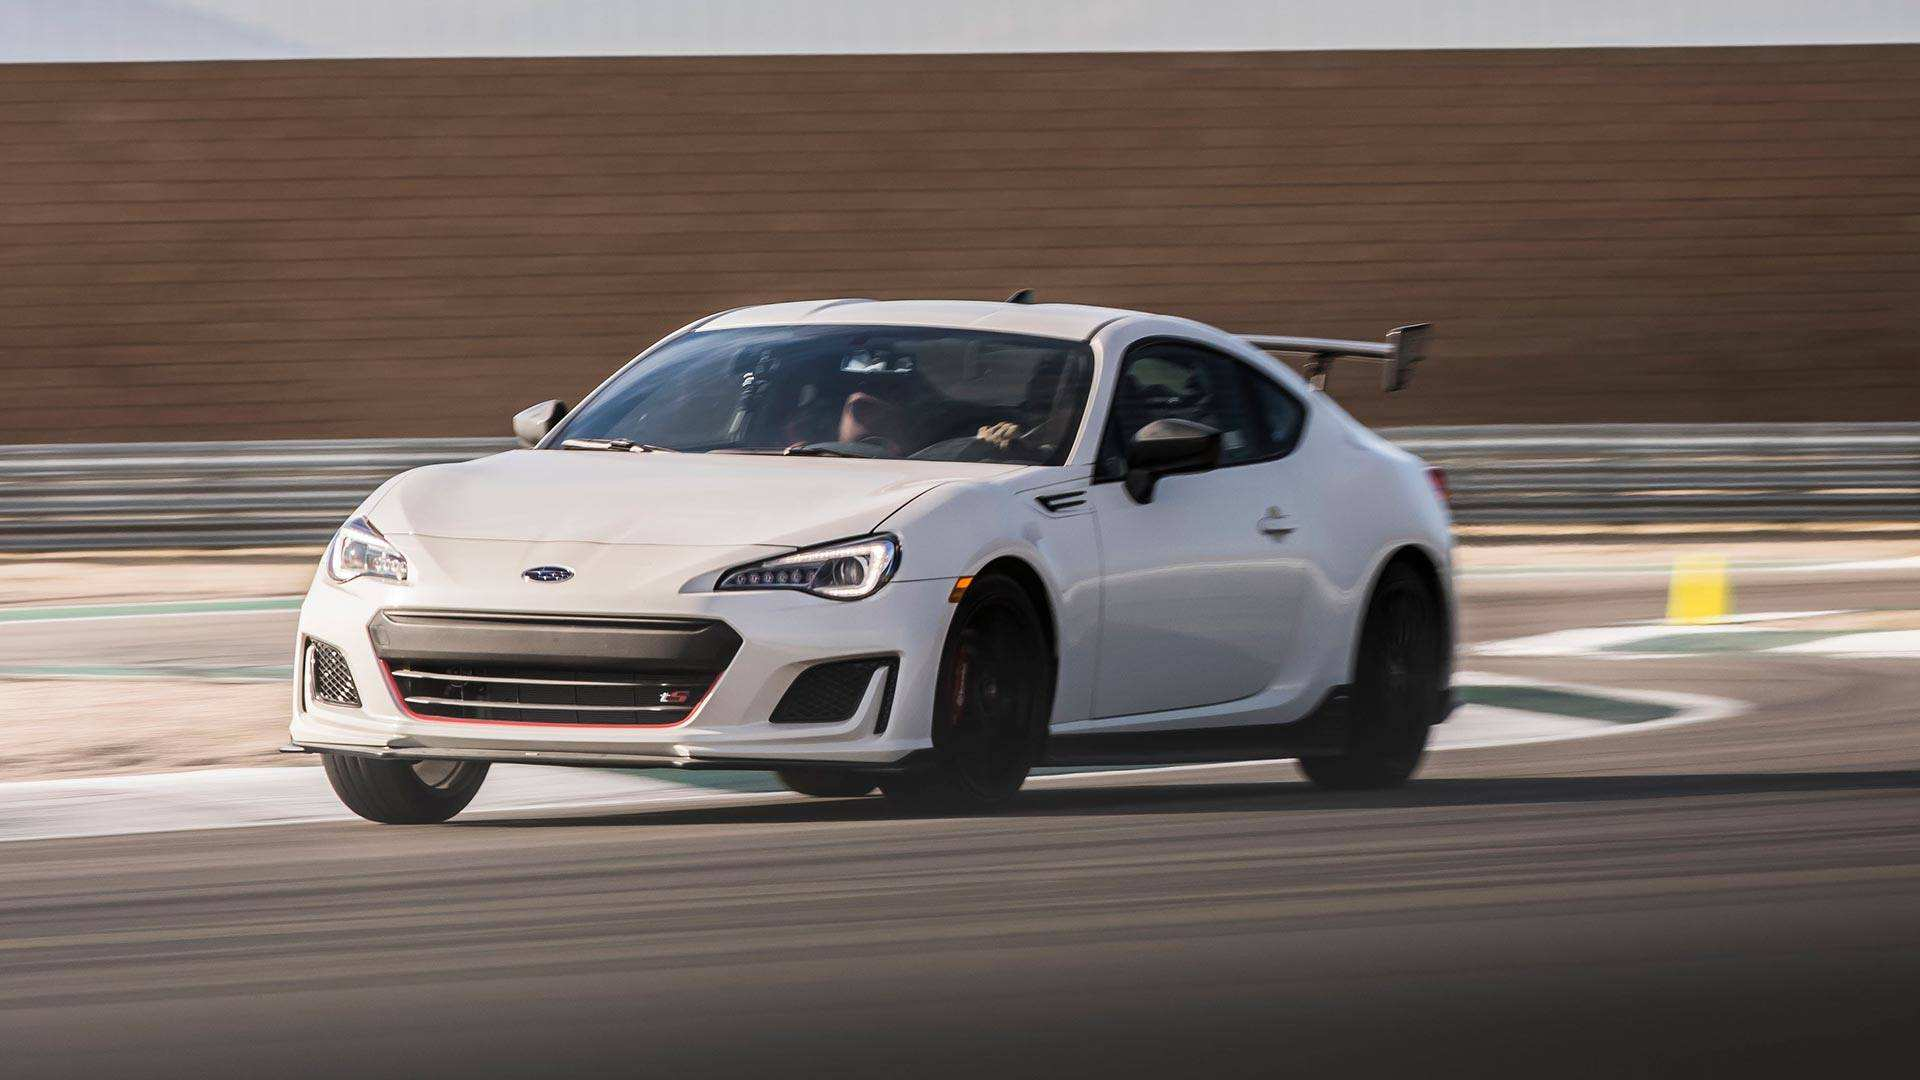 12 Best Review Subaru Brz Ts 2020 Redesign and Concept with Subaru Brz Ts 2020